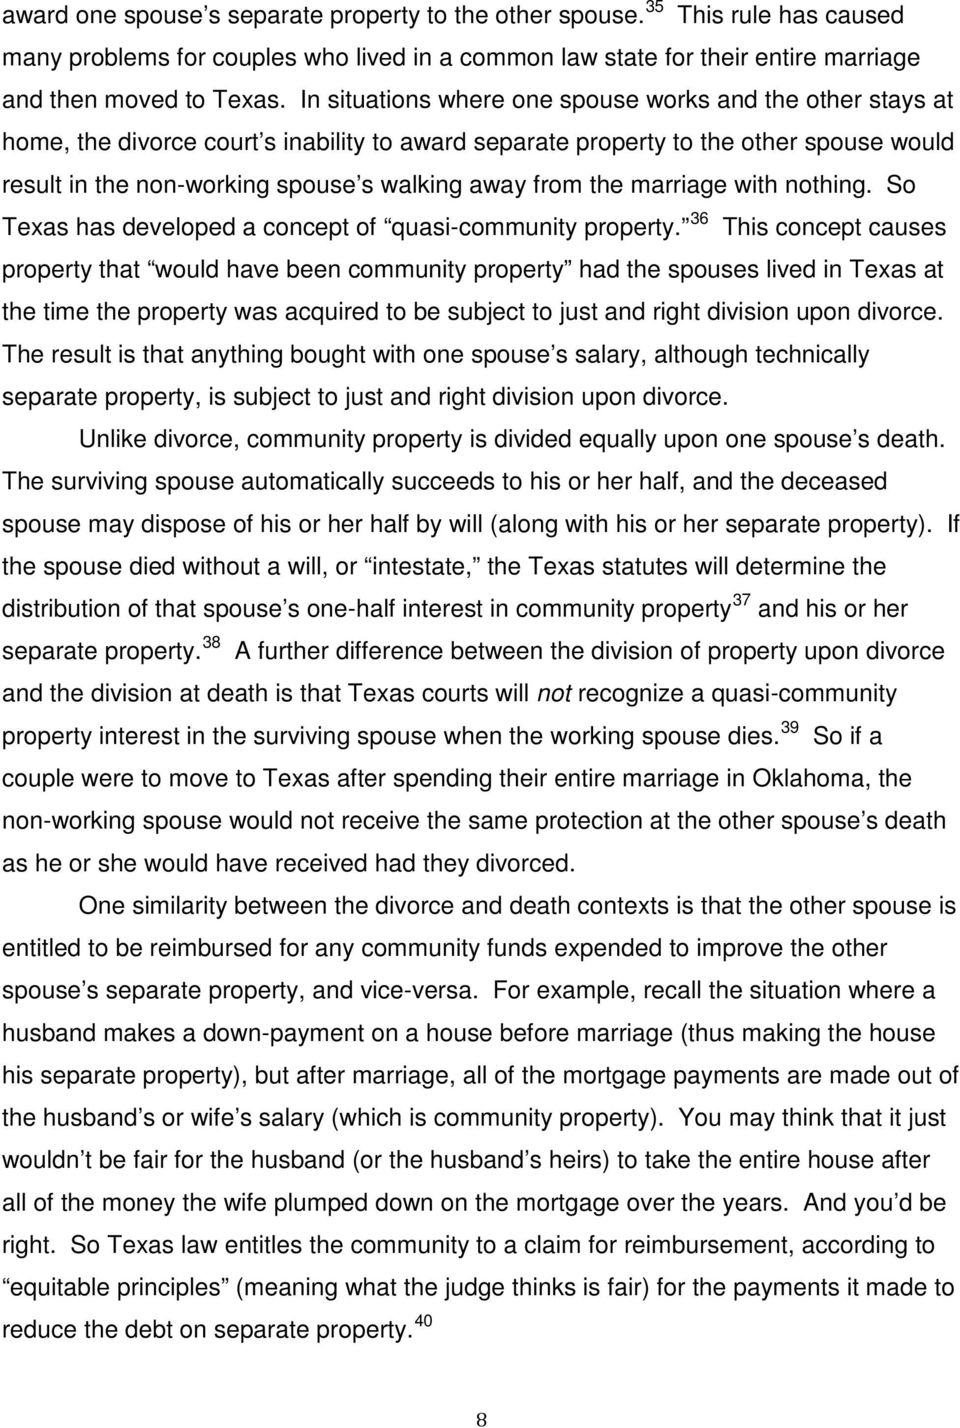 from the marriage with nothing. So Texas has developed a concept of quasi-community property.